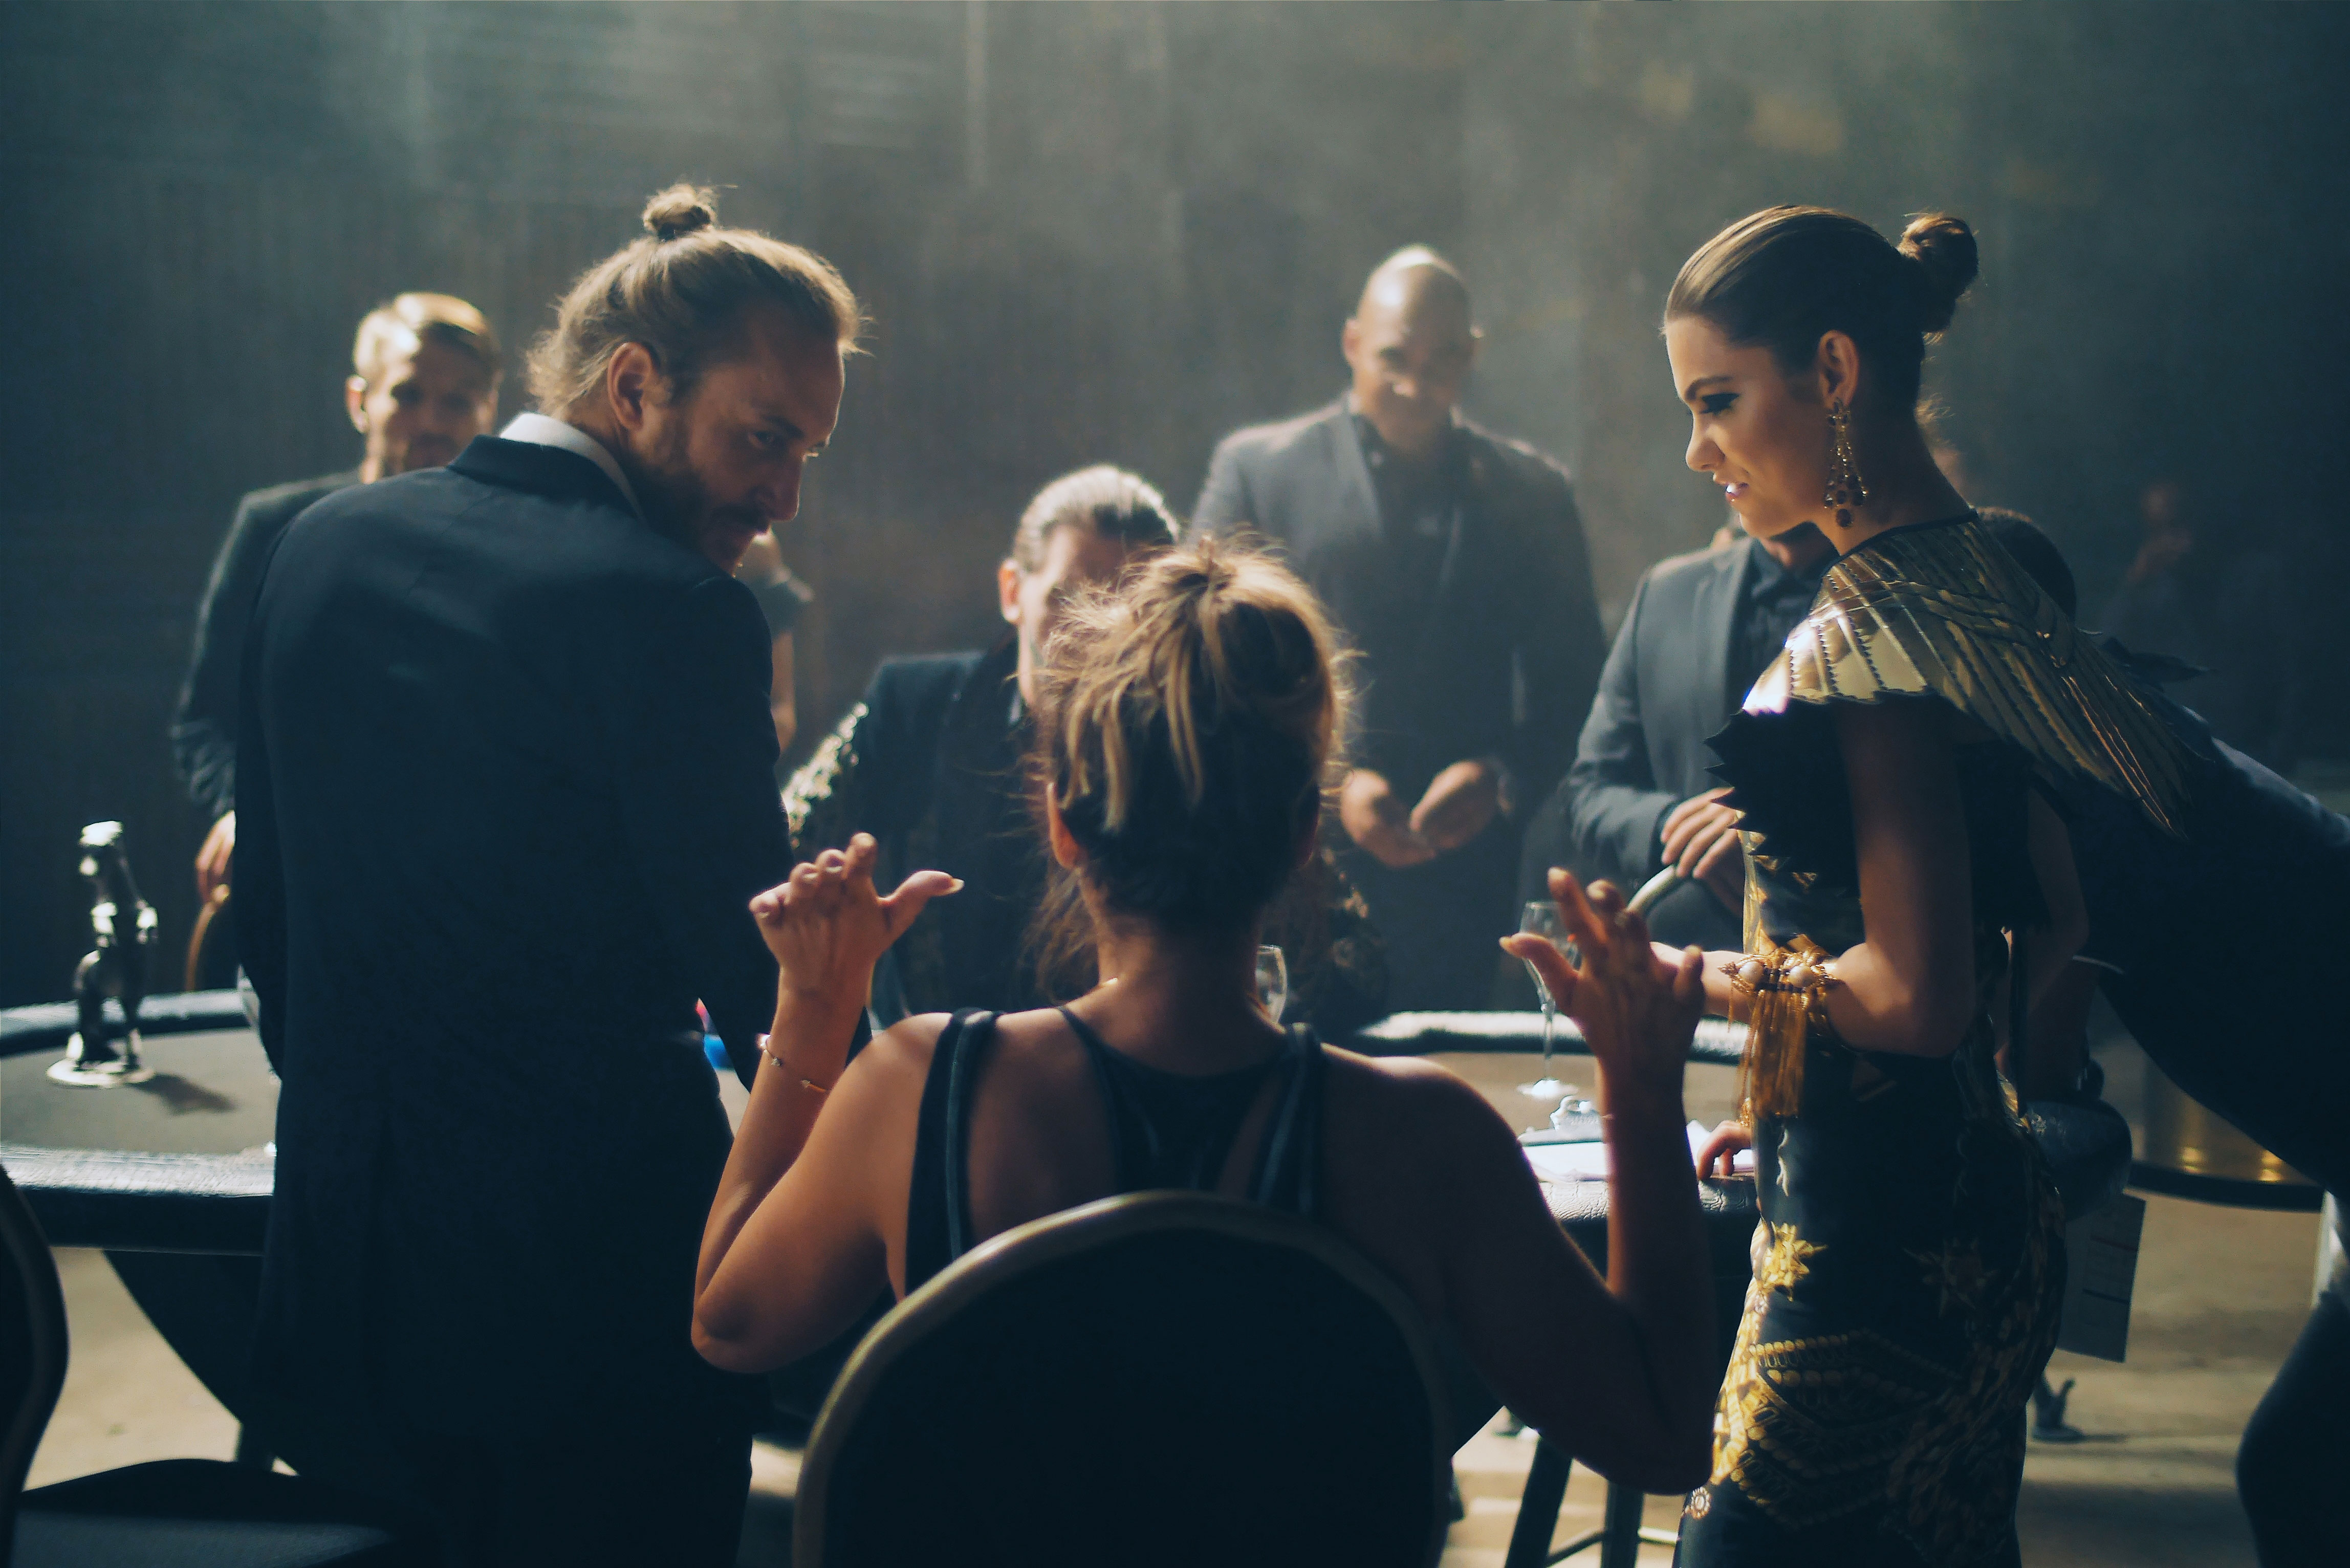 BEHIND THE SCENES OF DAVID GUETTA'S NEW VIDEO BANG MY HEAD